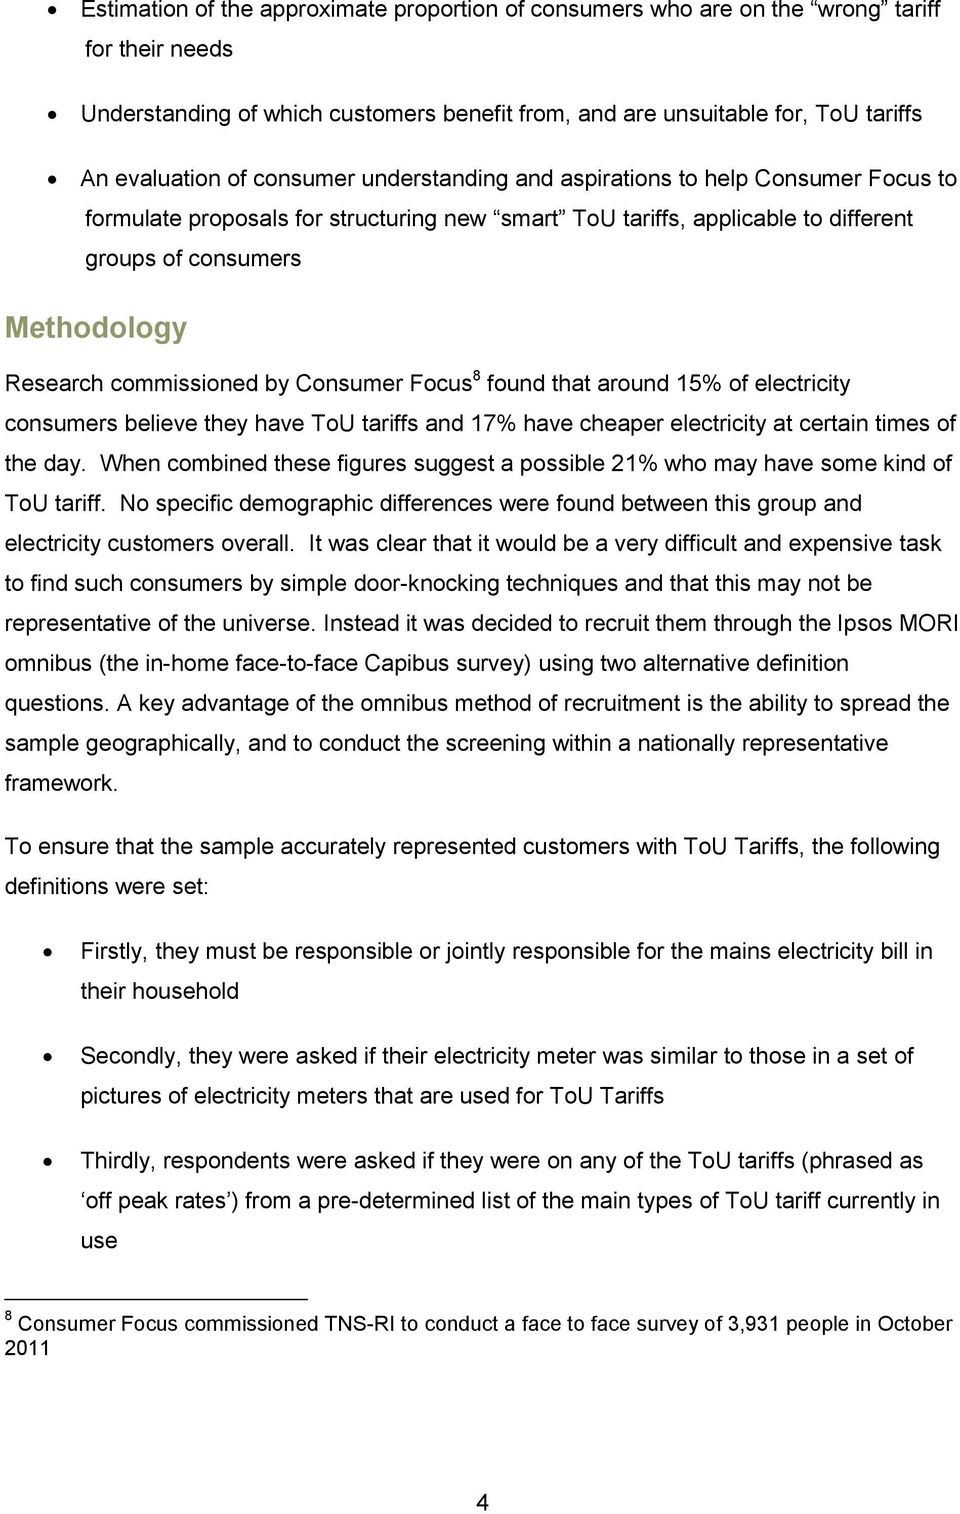 commissioned by Consumer Focus 8 found that around 15% of electricity consumers believe they have ToU tariffs and 17% have cheaper electricity at certain times of the day.